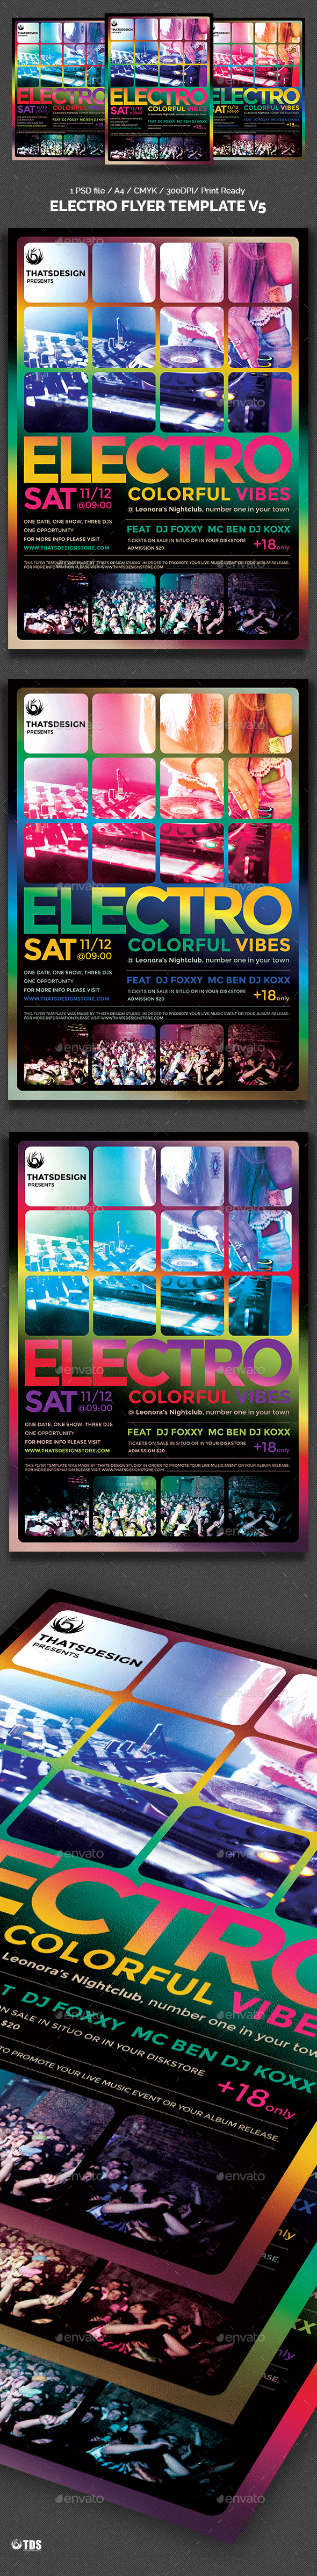 Electro Flyer Template V5 - Clubs & Parties Events